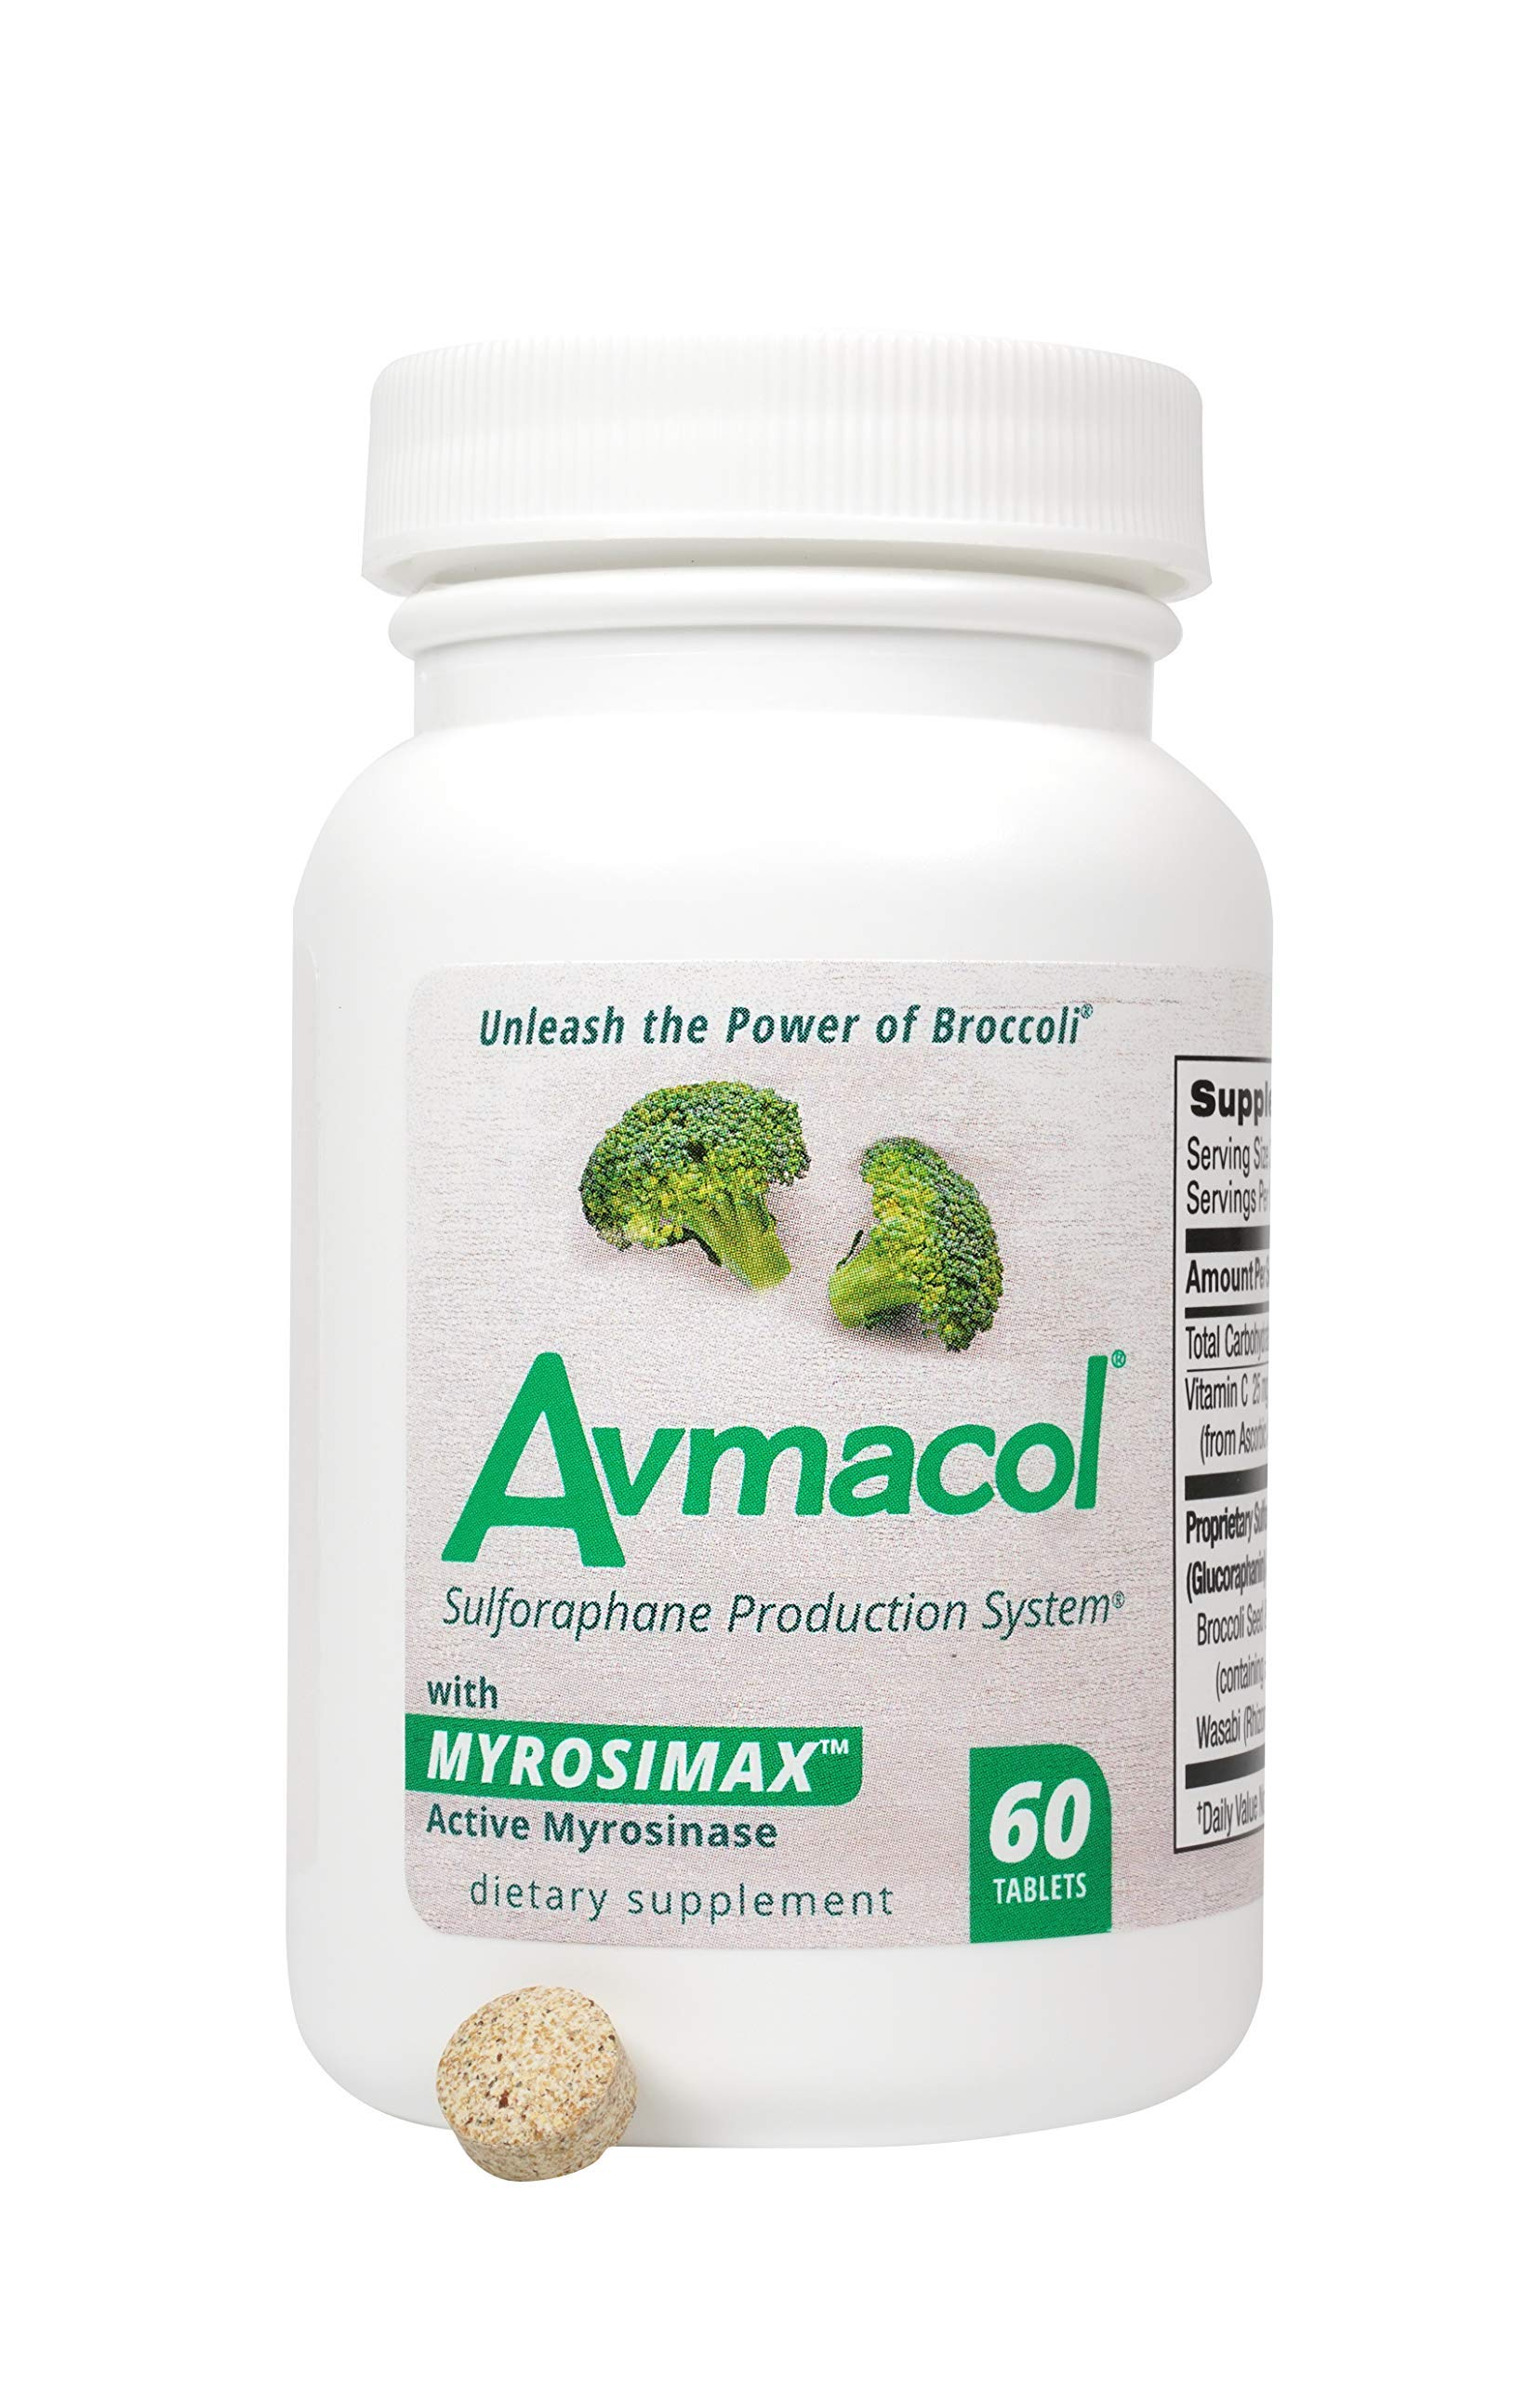 AVMACOL® (60) Sulforaphane Supplement with Myrosinase for Immune Support and detoxification